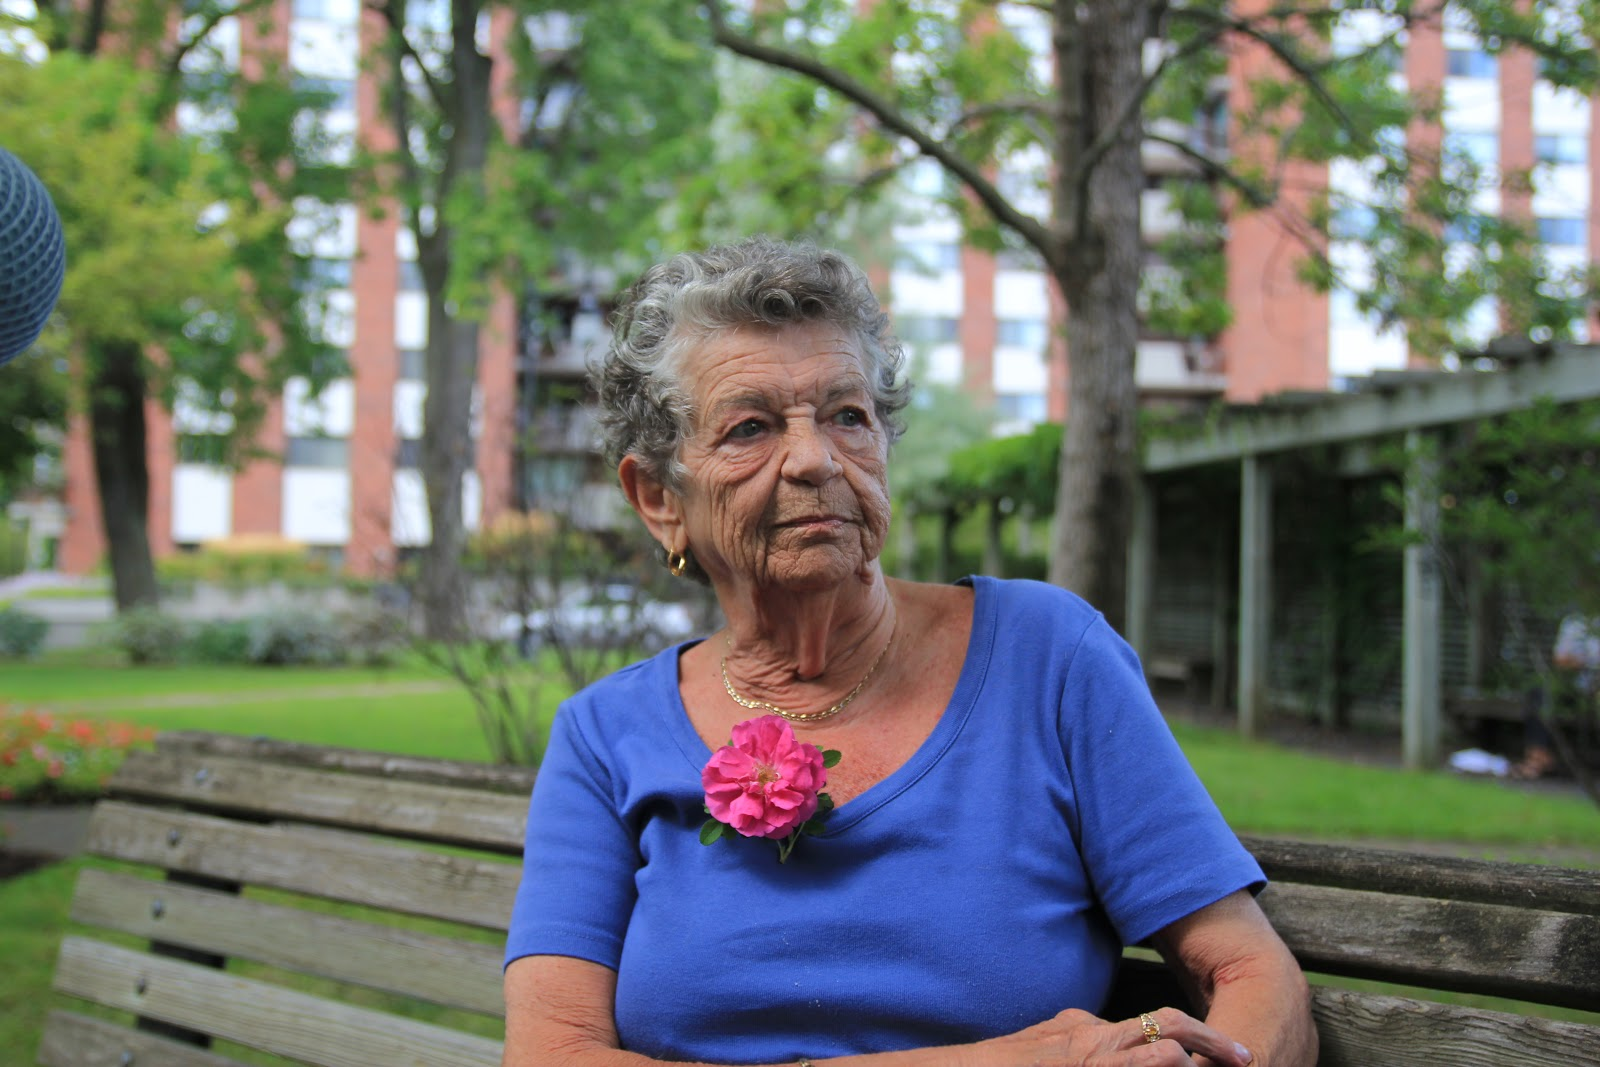 No Kids For Me, Thanks - Claudette Valiquette (71) never wanted children. She died during the shooting of No Kids for Me, Please which is dedicated to her.